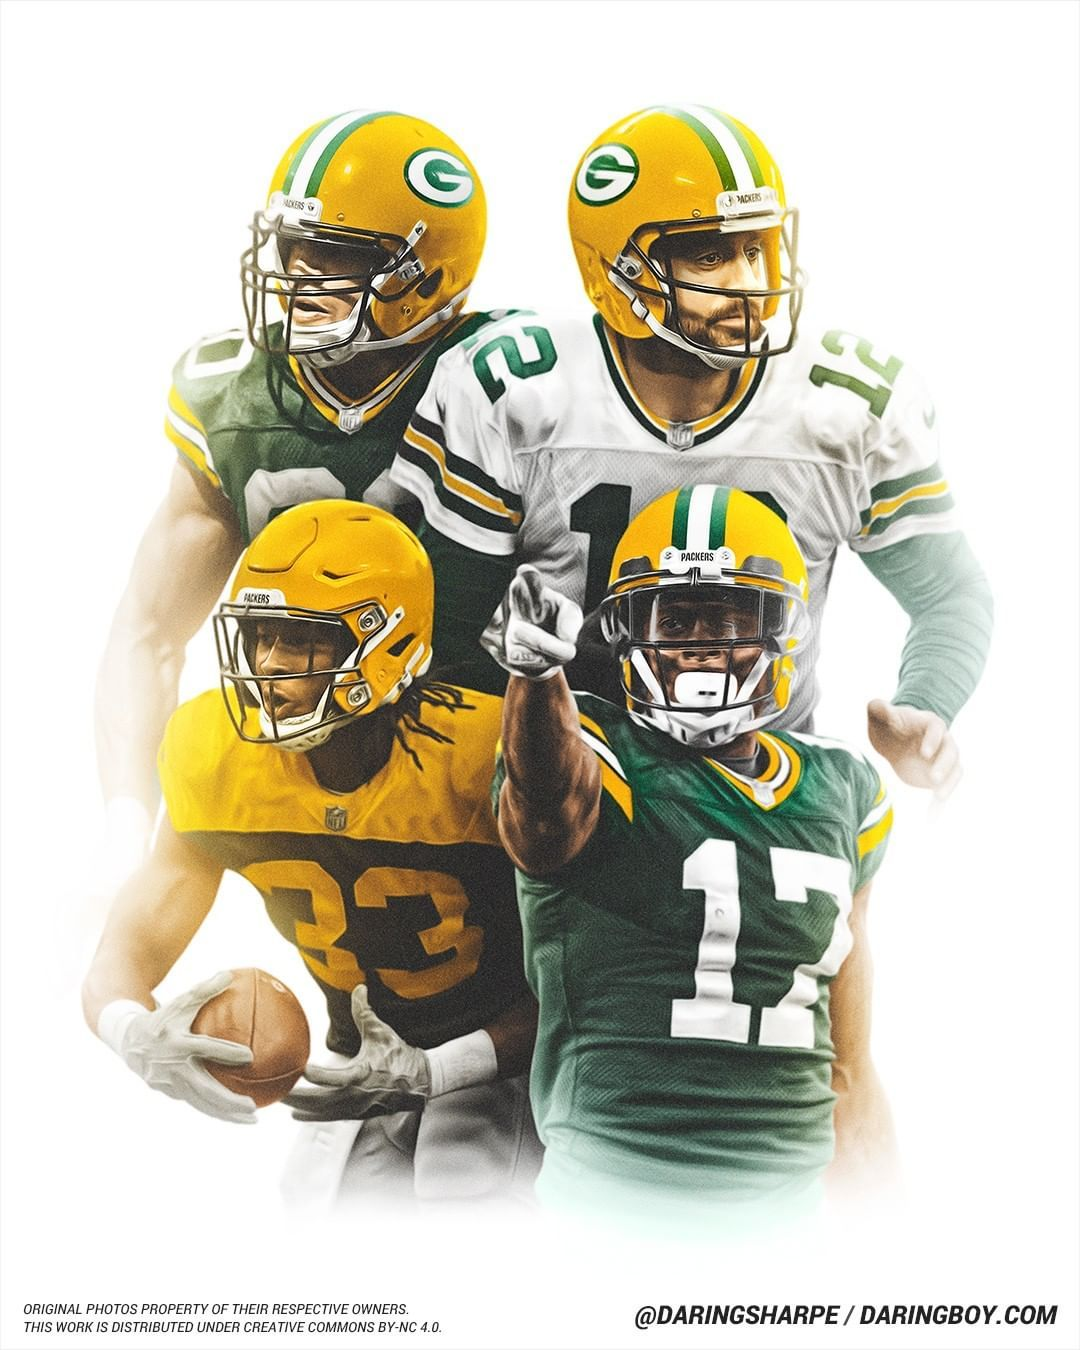 Matt Sharpe On Instagram The Packers Offense Should Be Explosive In 2019 Beyond The Additions An Aaron Rodgers Jimmy Graham